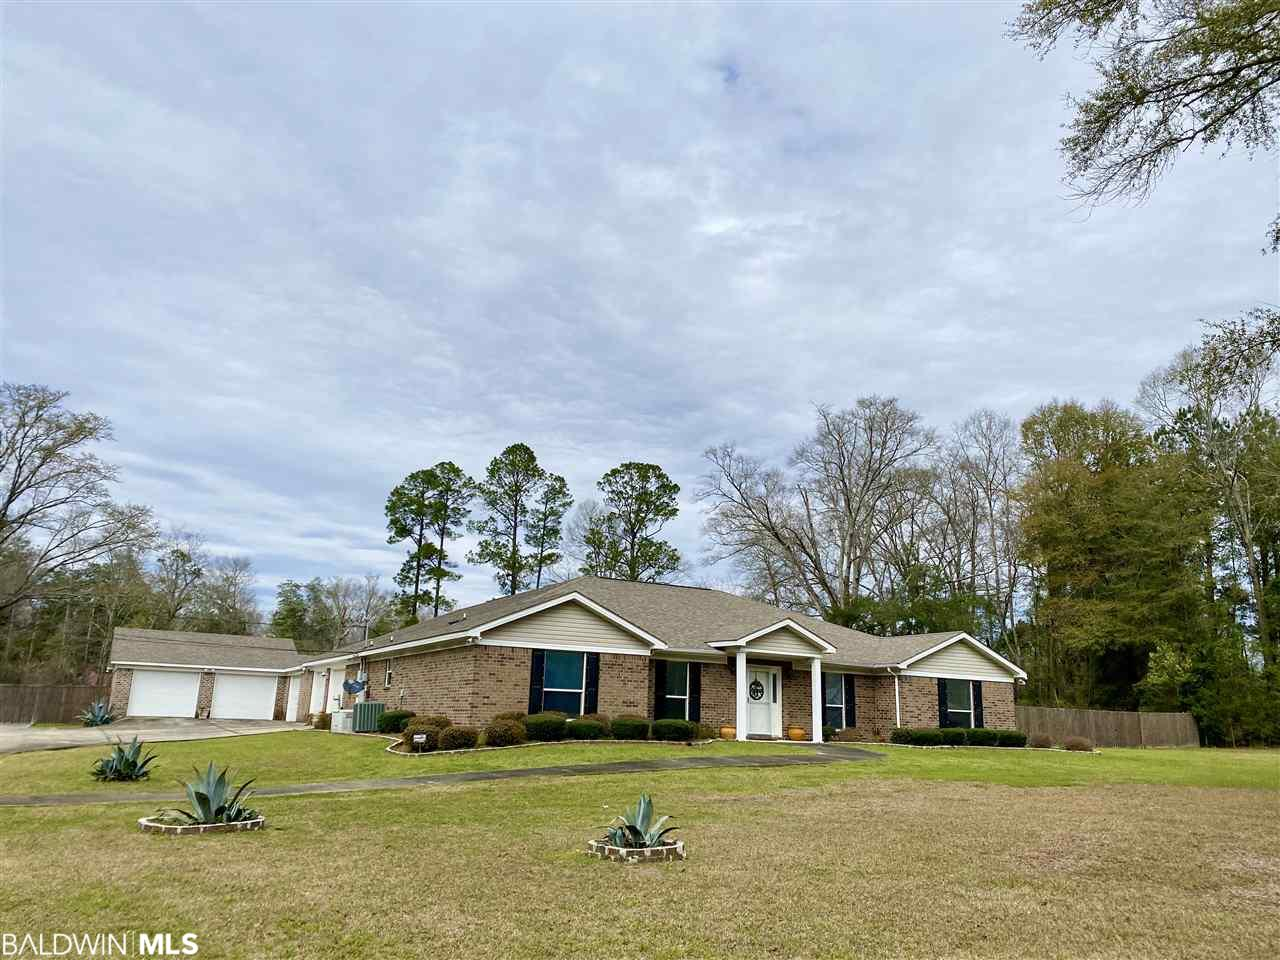 883 Dr Martin Luther King Jr Dr, Brewton, AL 36426